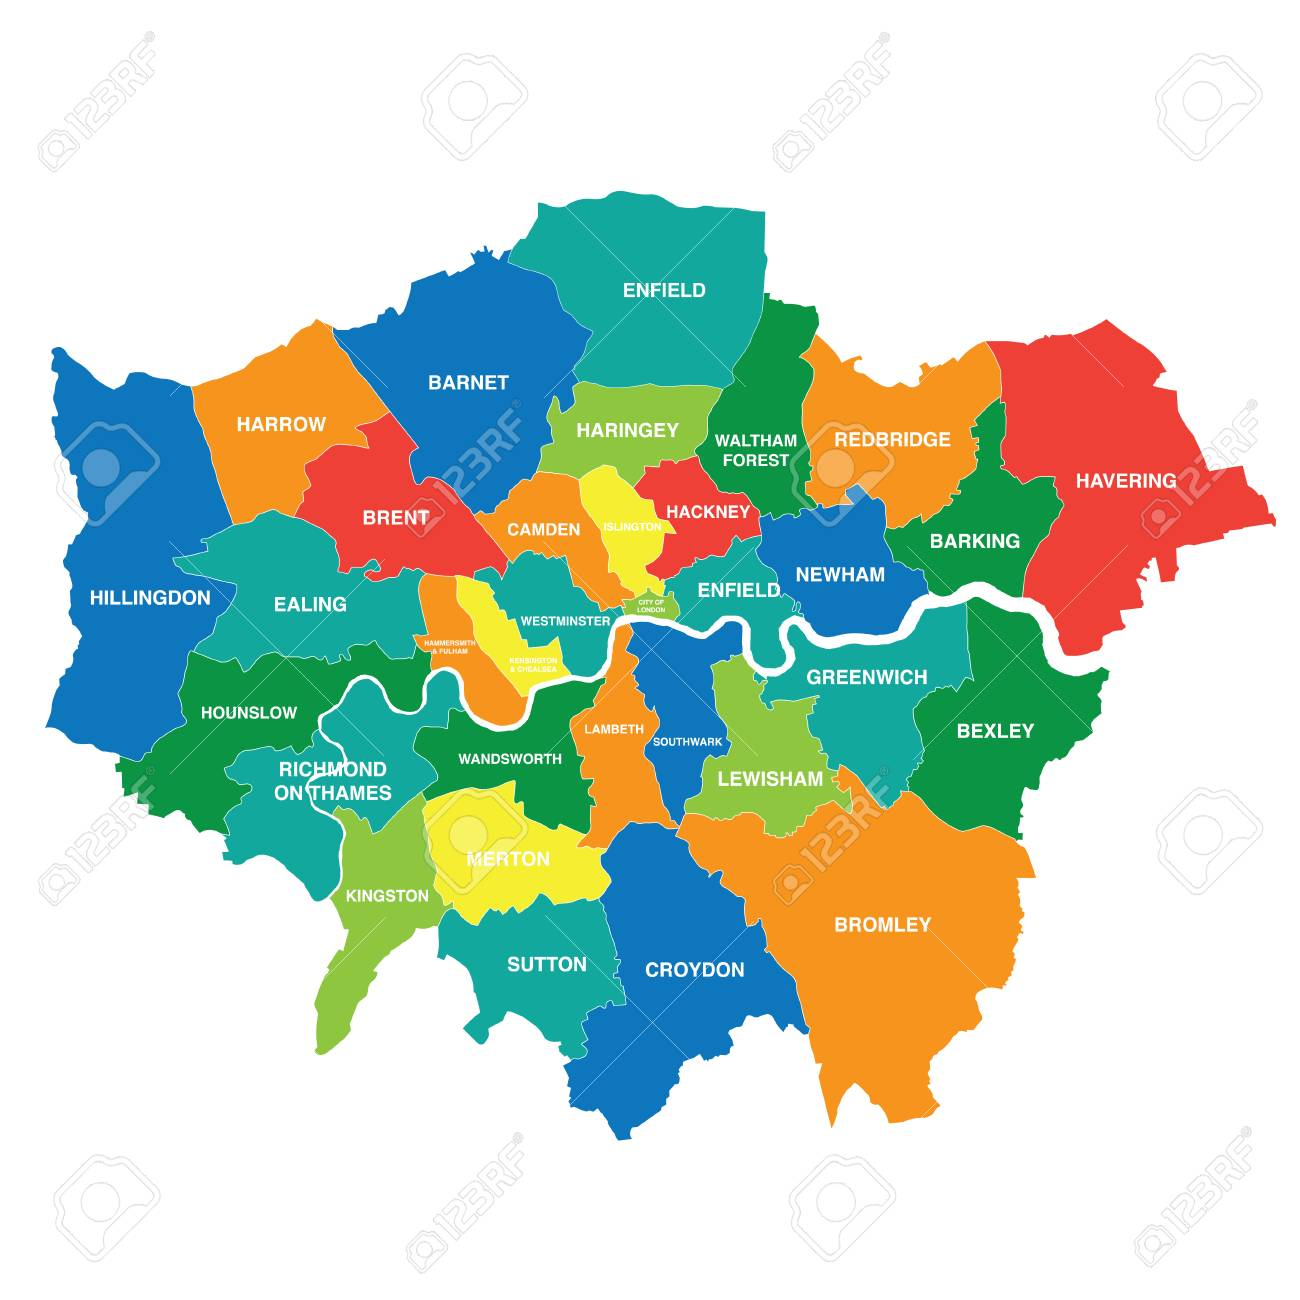 London And Greater London Map.Greater London Map Showing All Boroughs